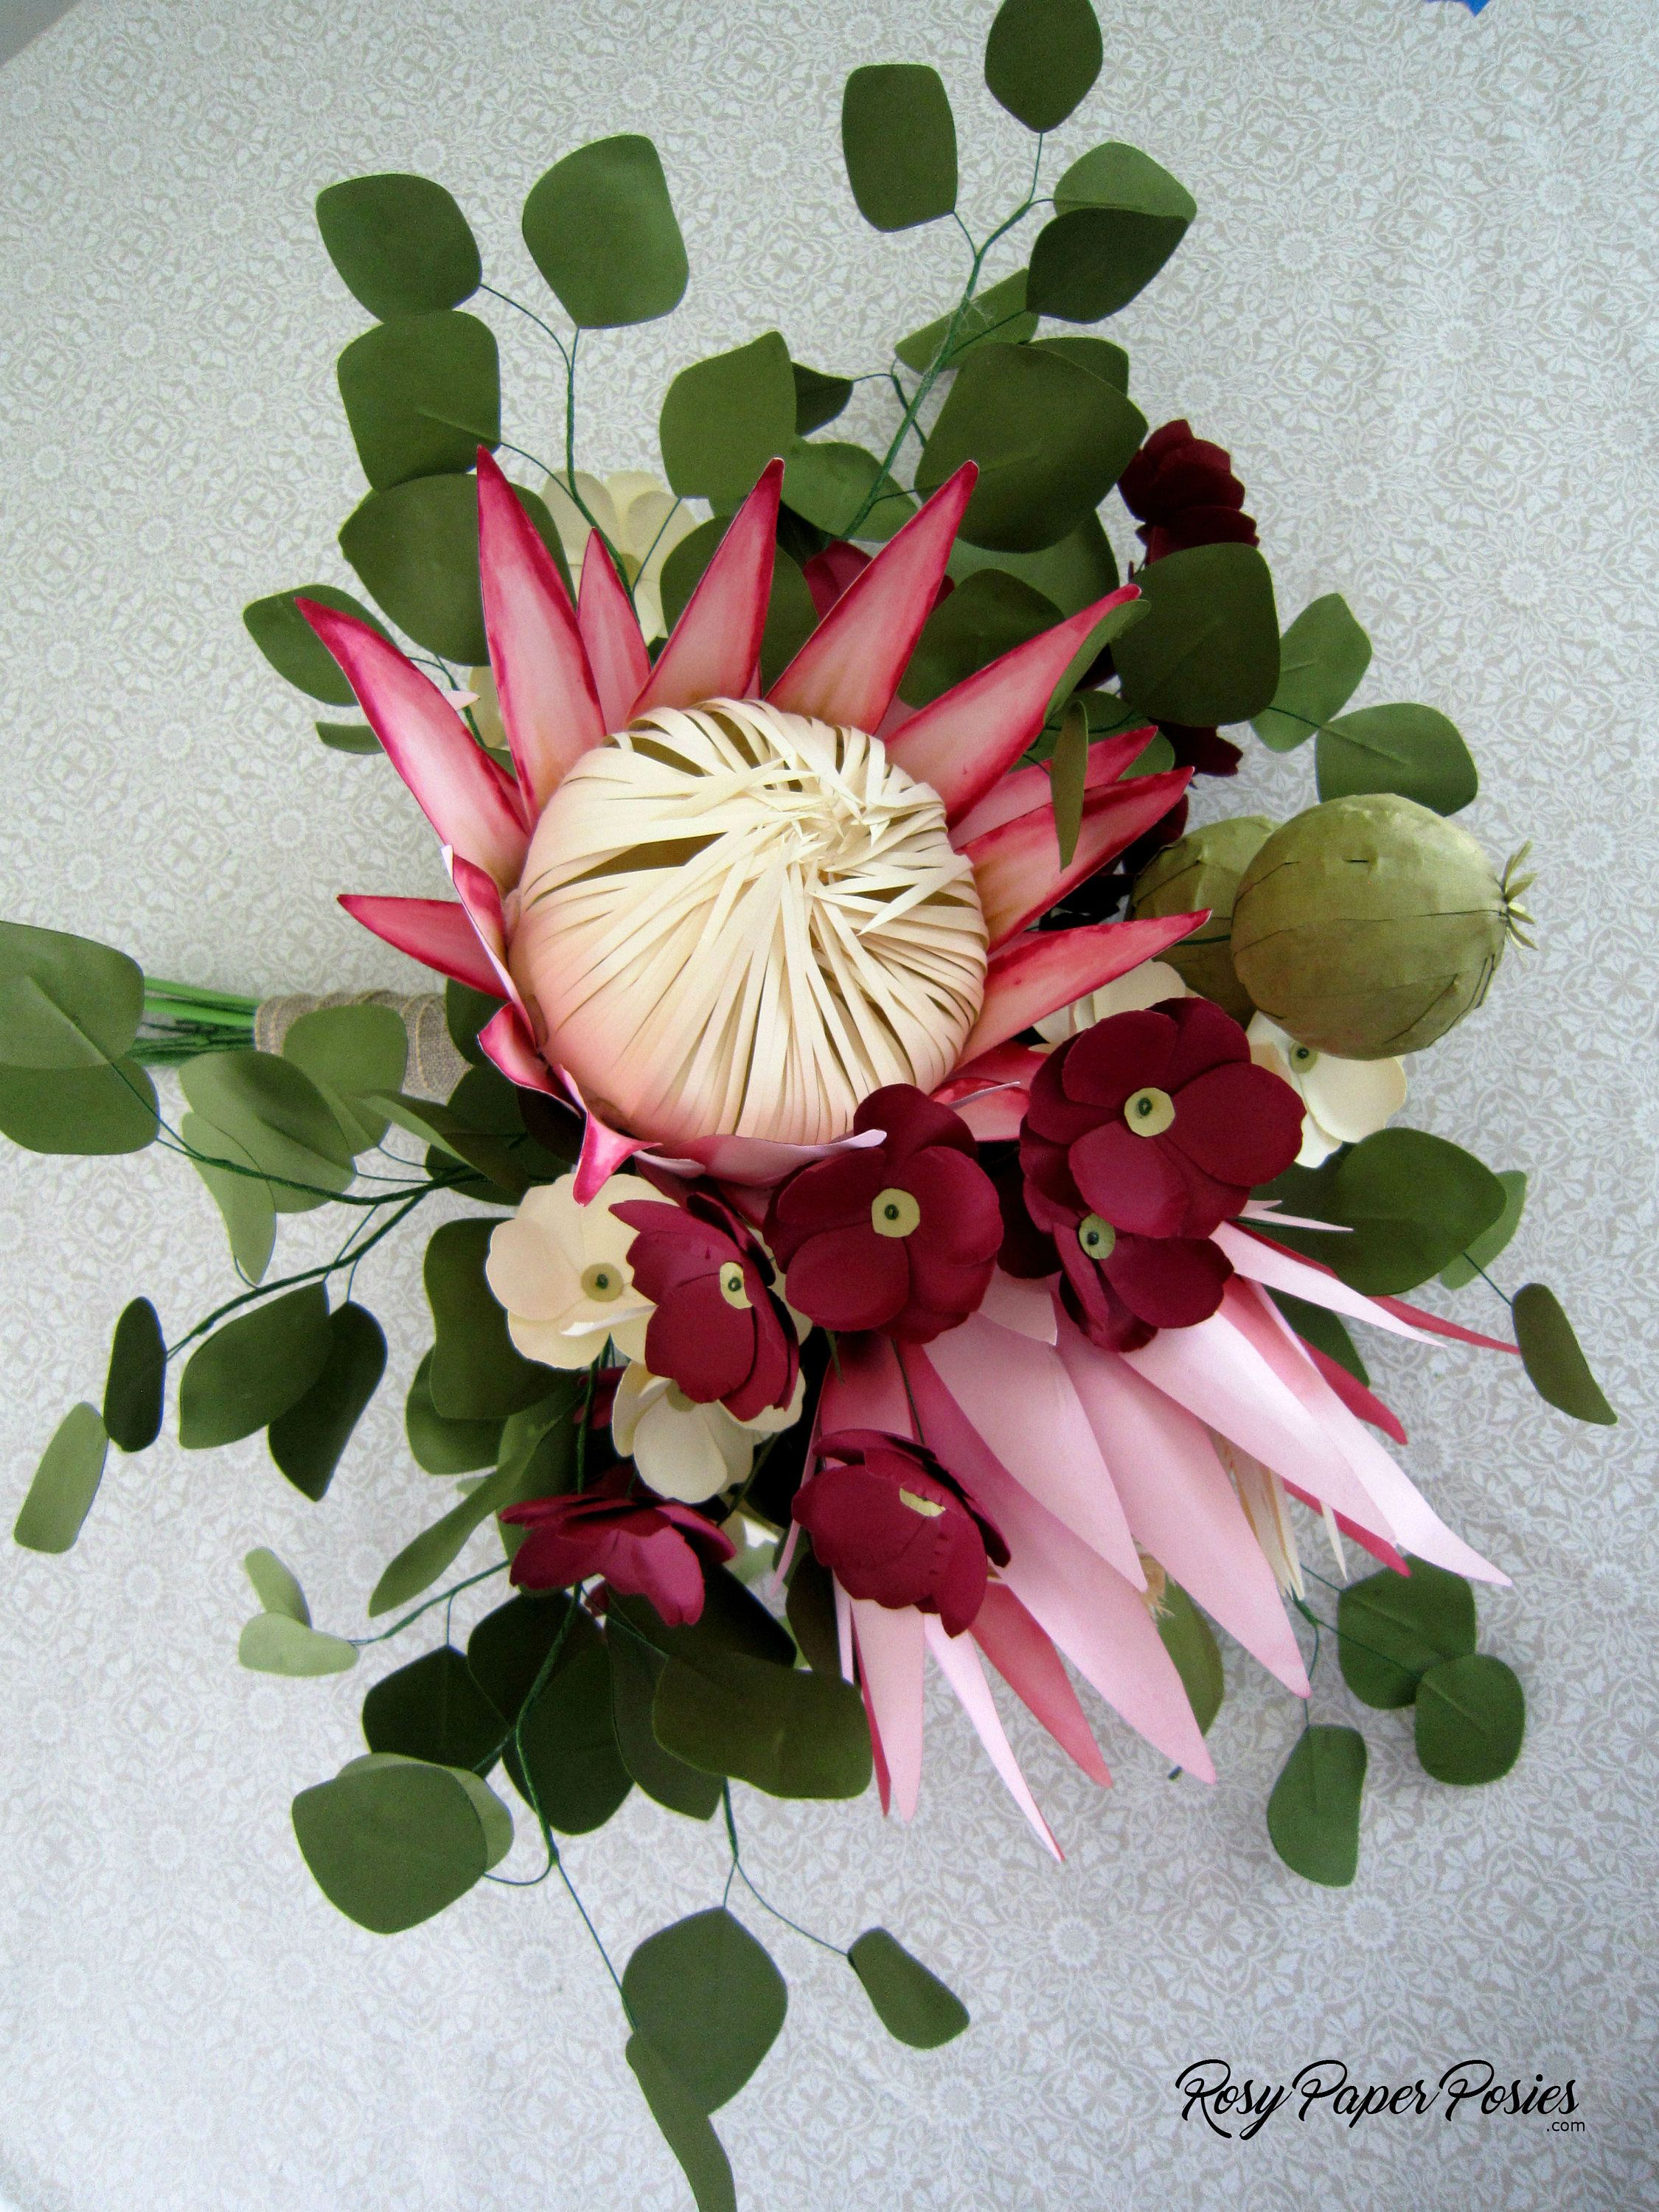 Diy Paper Protea Pattern And Instructions Pdf Svg By Diyrosypaperposies On Etsy Paper Flowers Paper Flowers Diy Large Paper Flowers